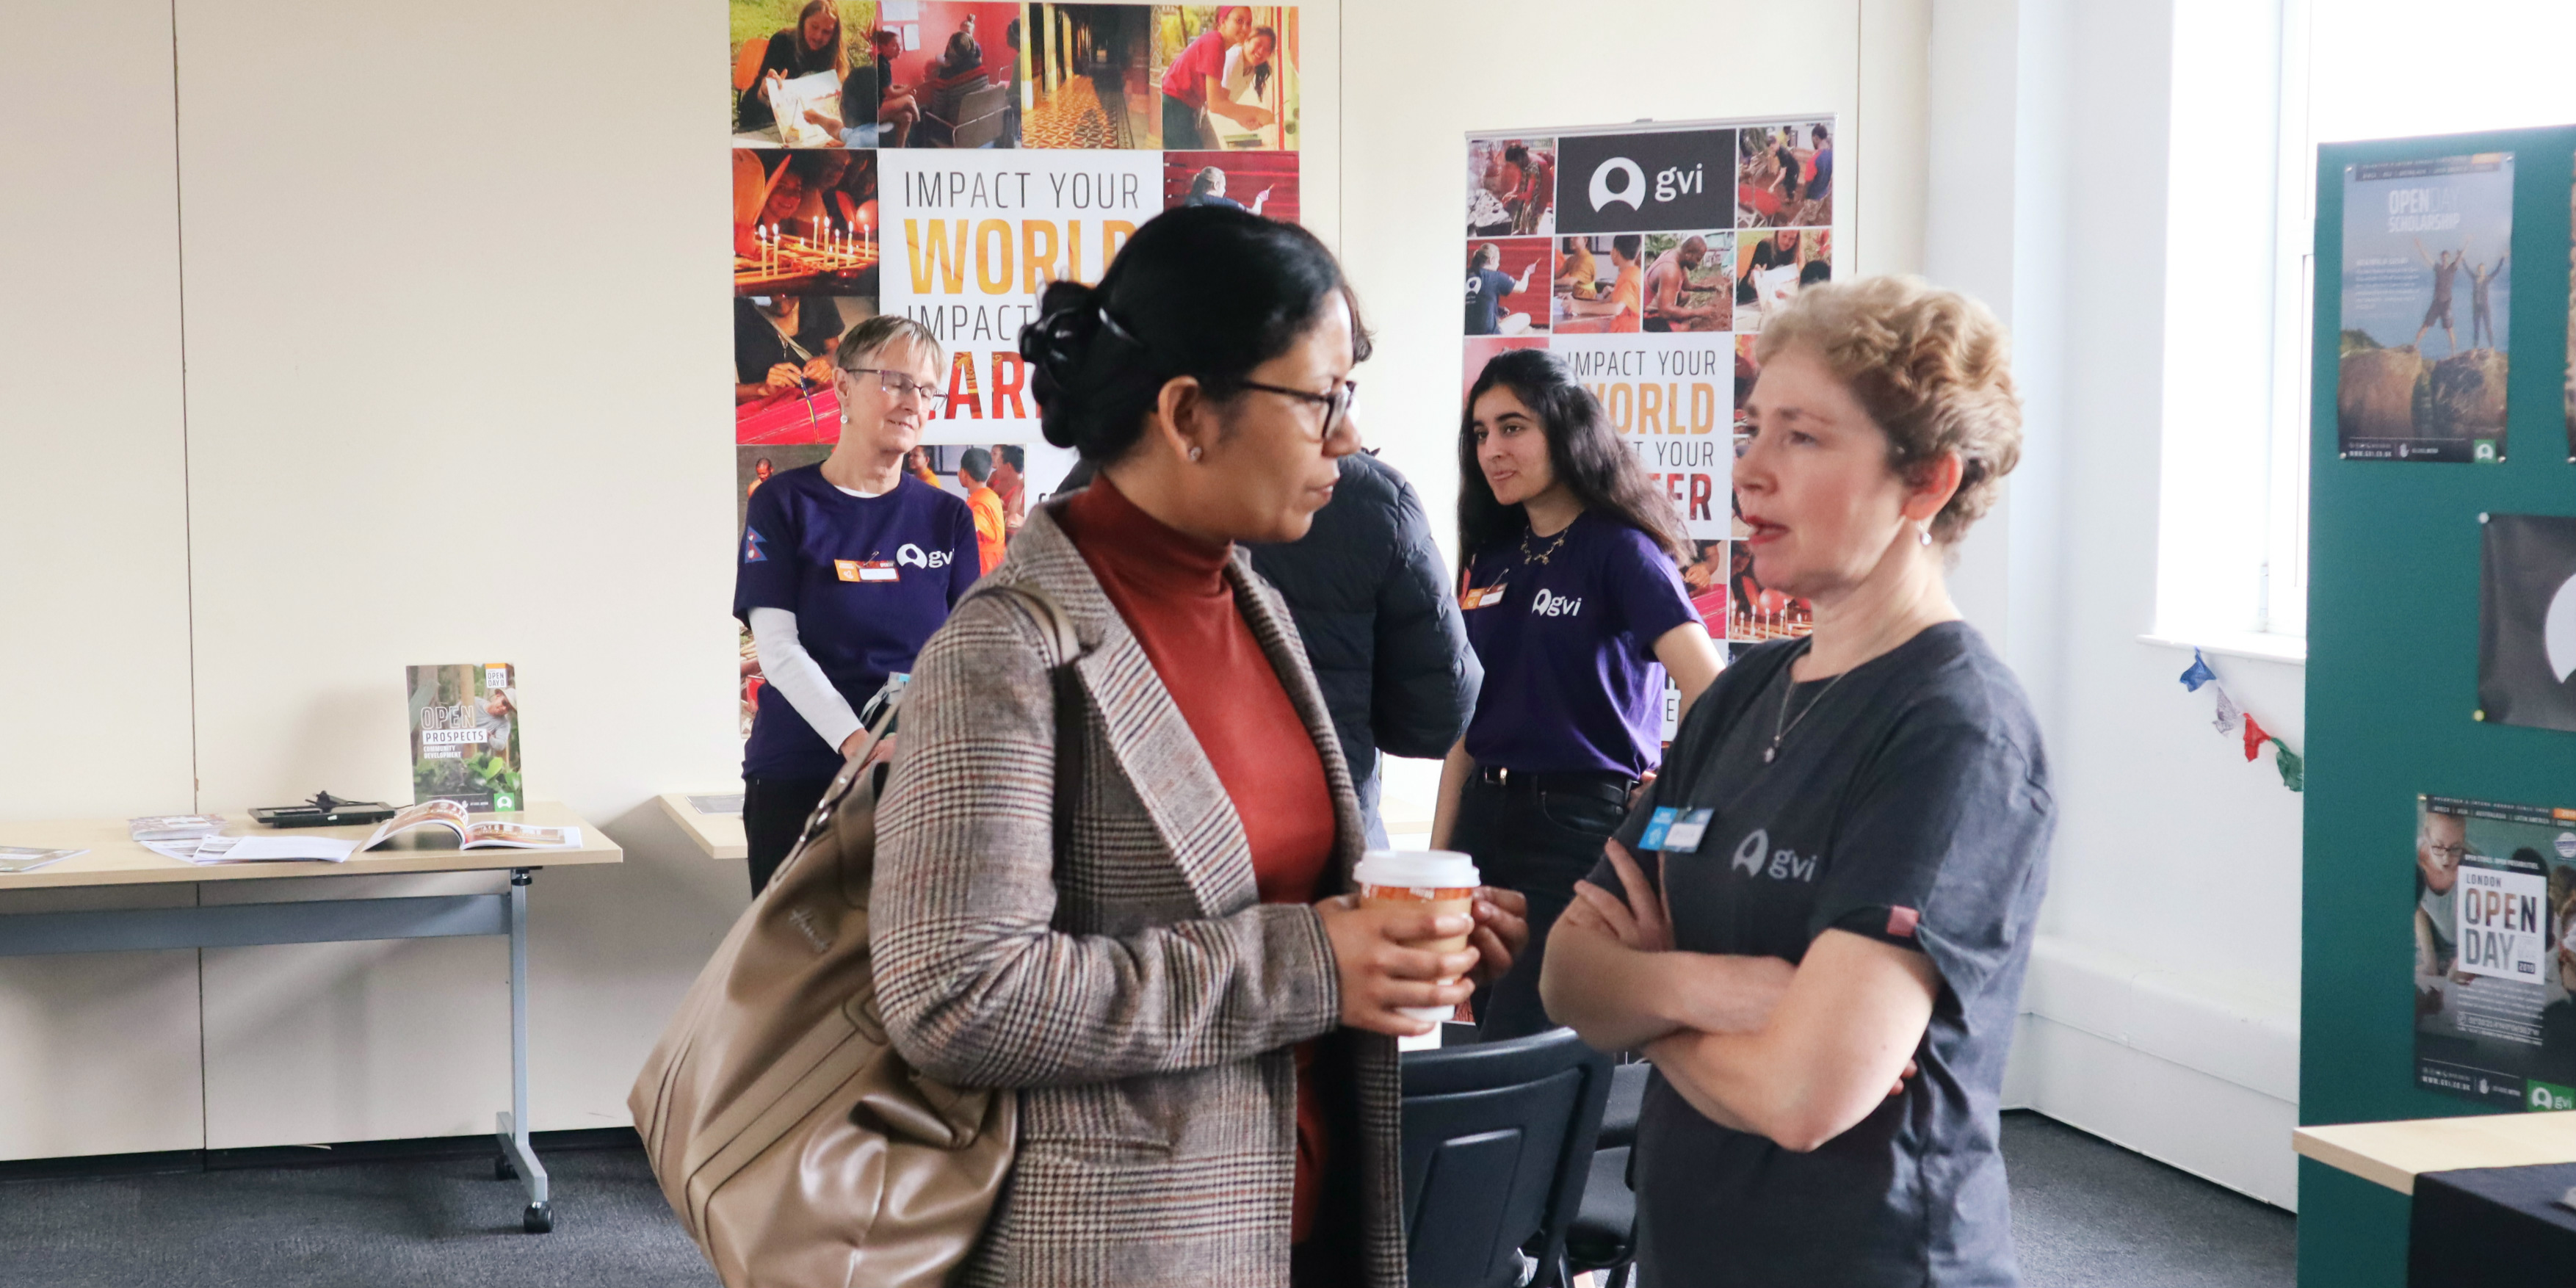 GVI ambassadors discuss GVI projects at an Open Day event in London. GVI's teen volunteering opportunities are a great way for teens to begin making an impact.